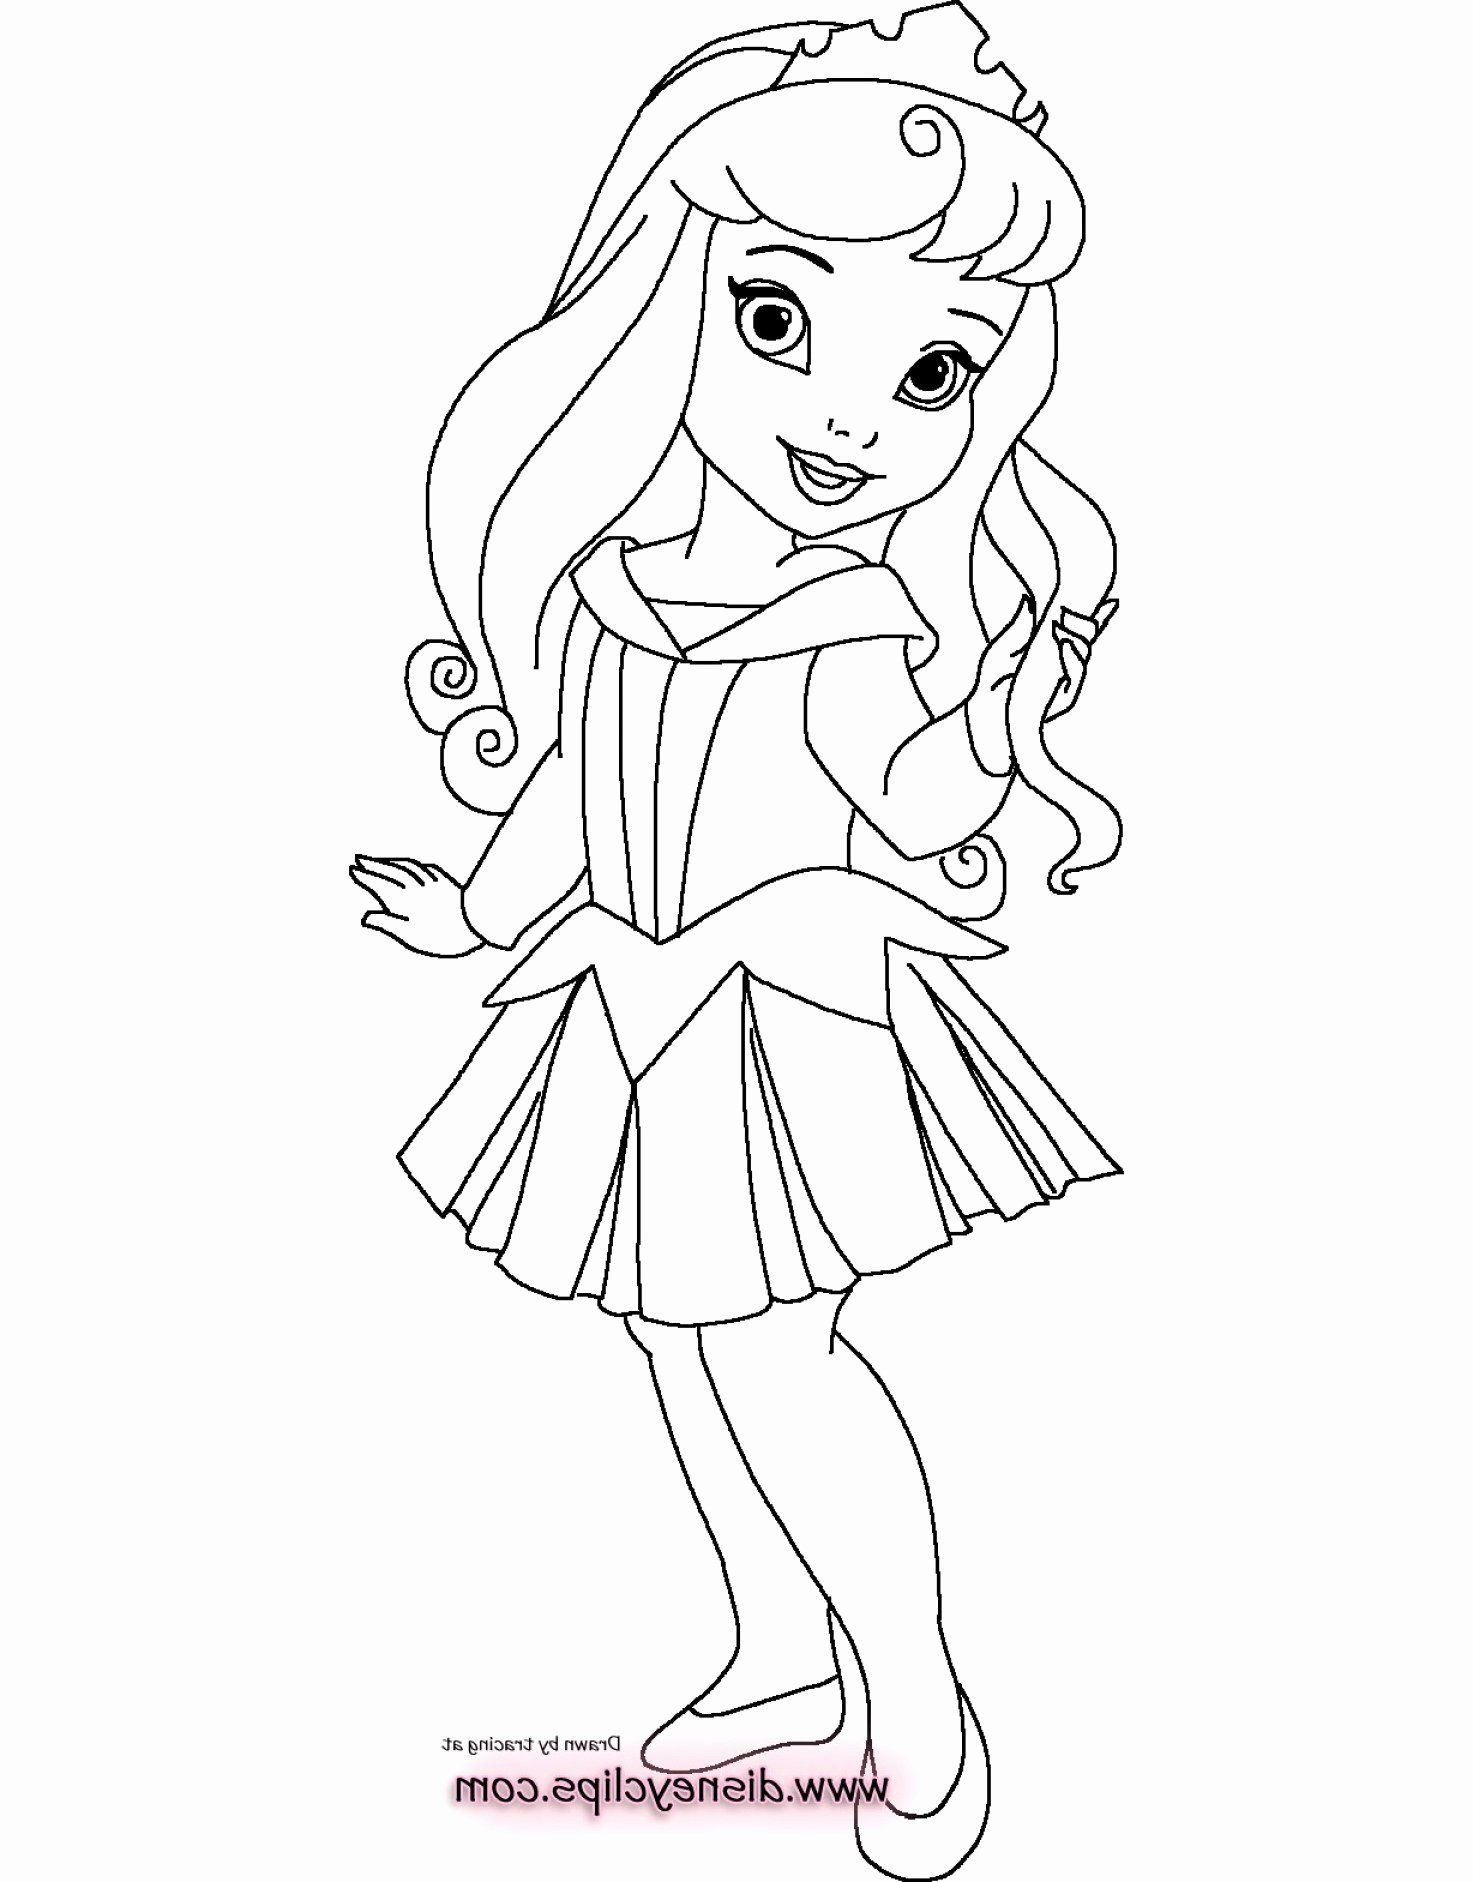 Disney Princess Jasmine Coloring Pages Inspirational Coloring Book Free Disney Princ Disney Princess Coloring Pages Princess Coloring Pages Baby Coloring Pages